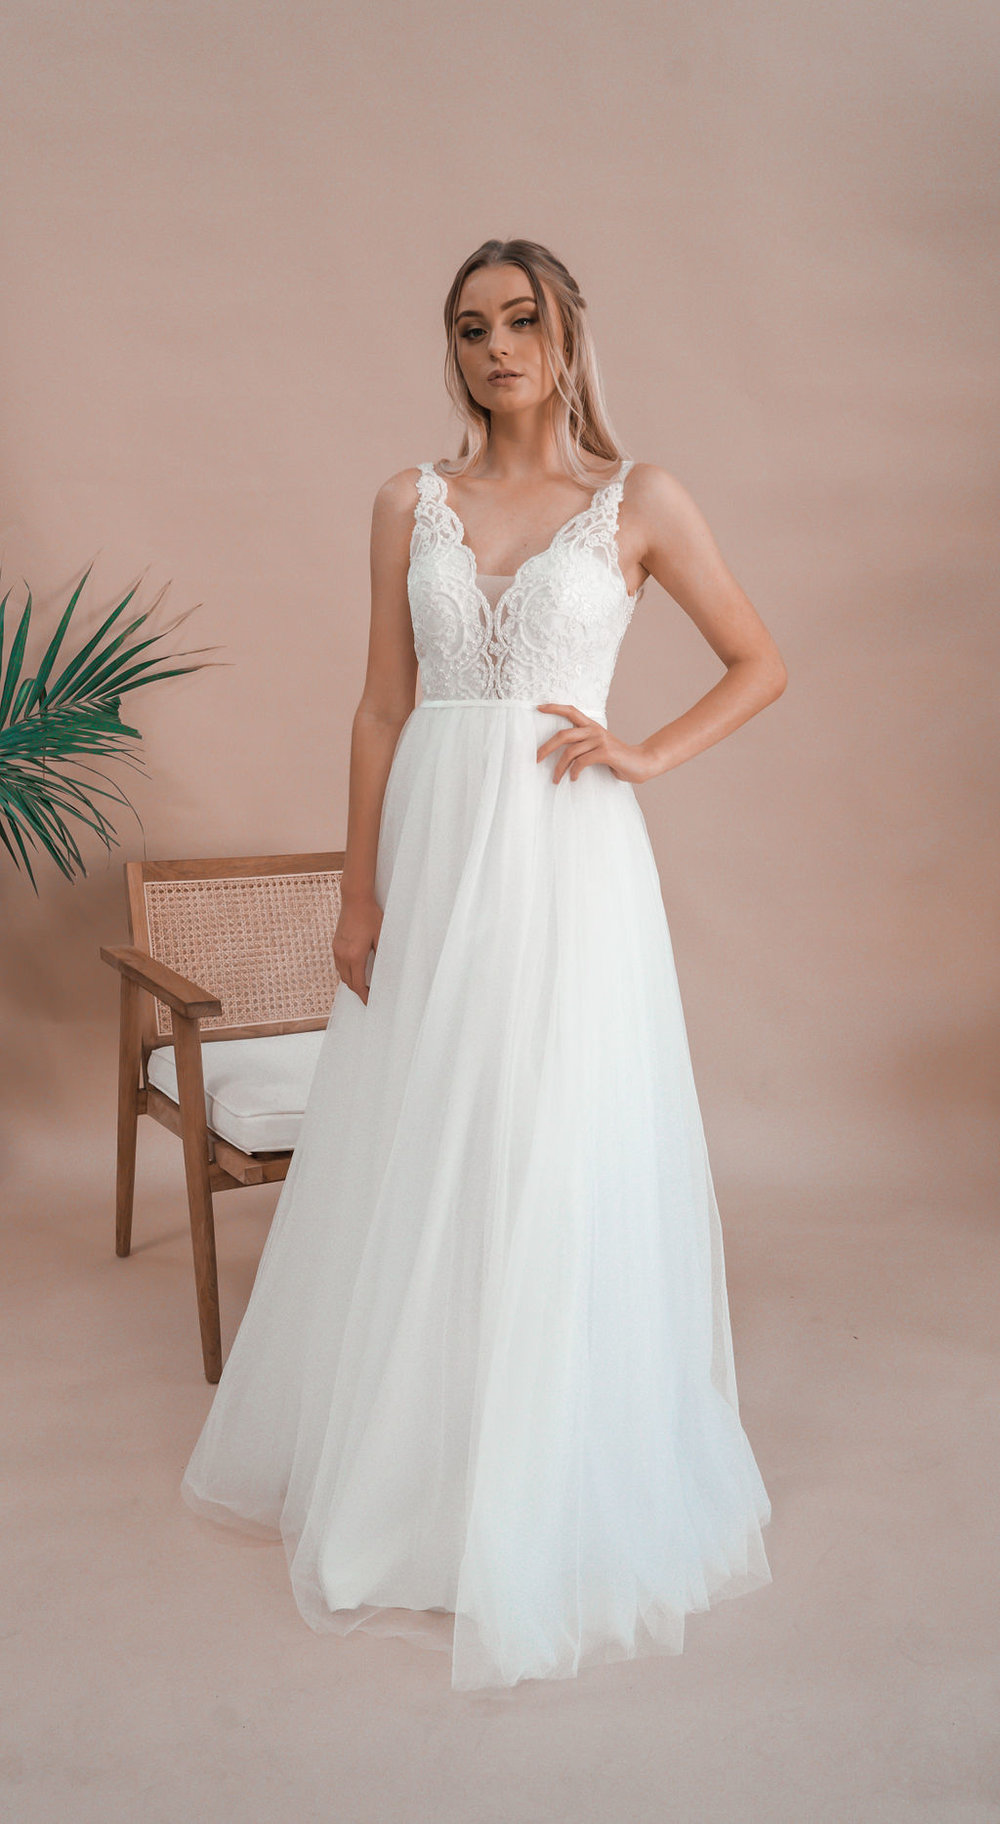 Sasha Debutante Dress